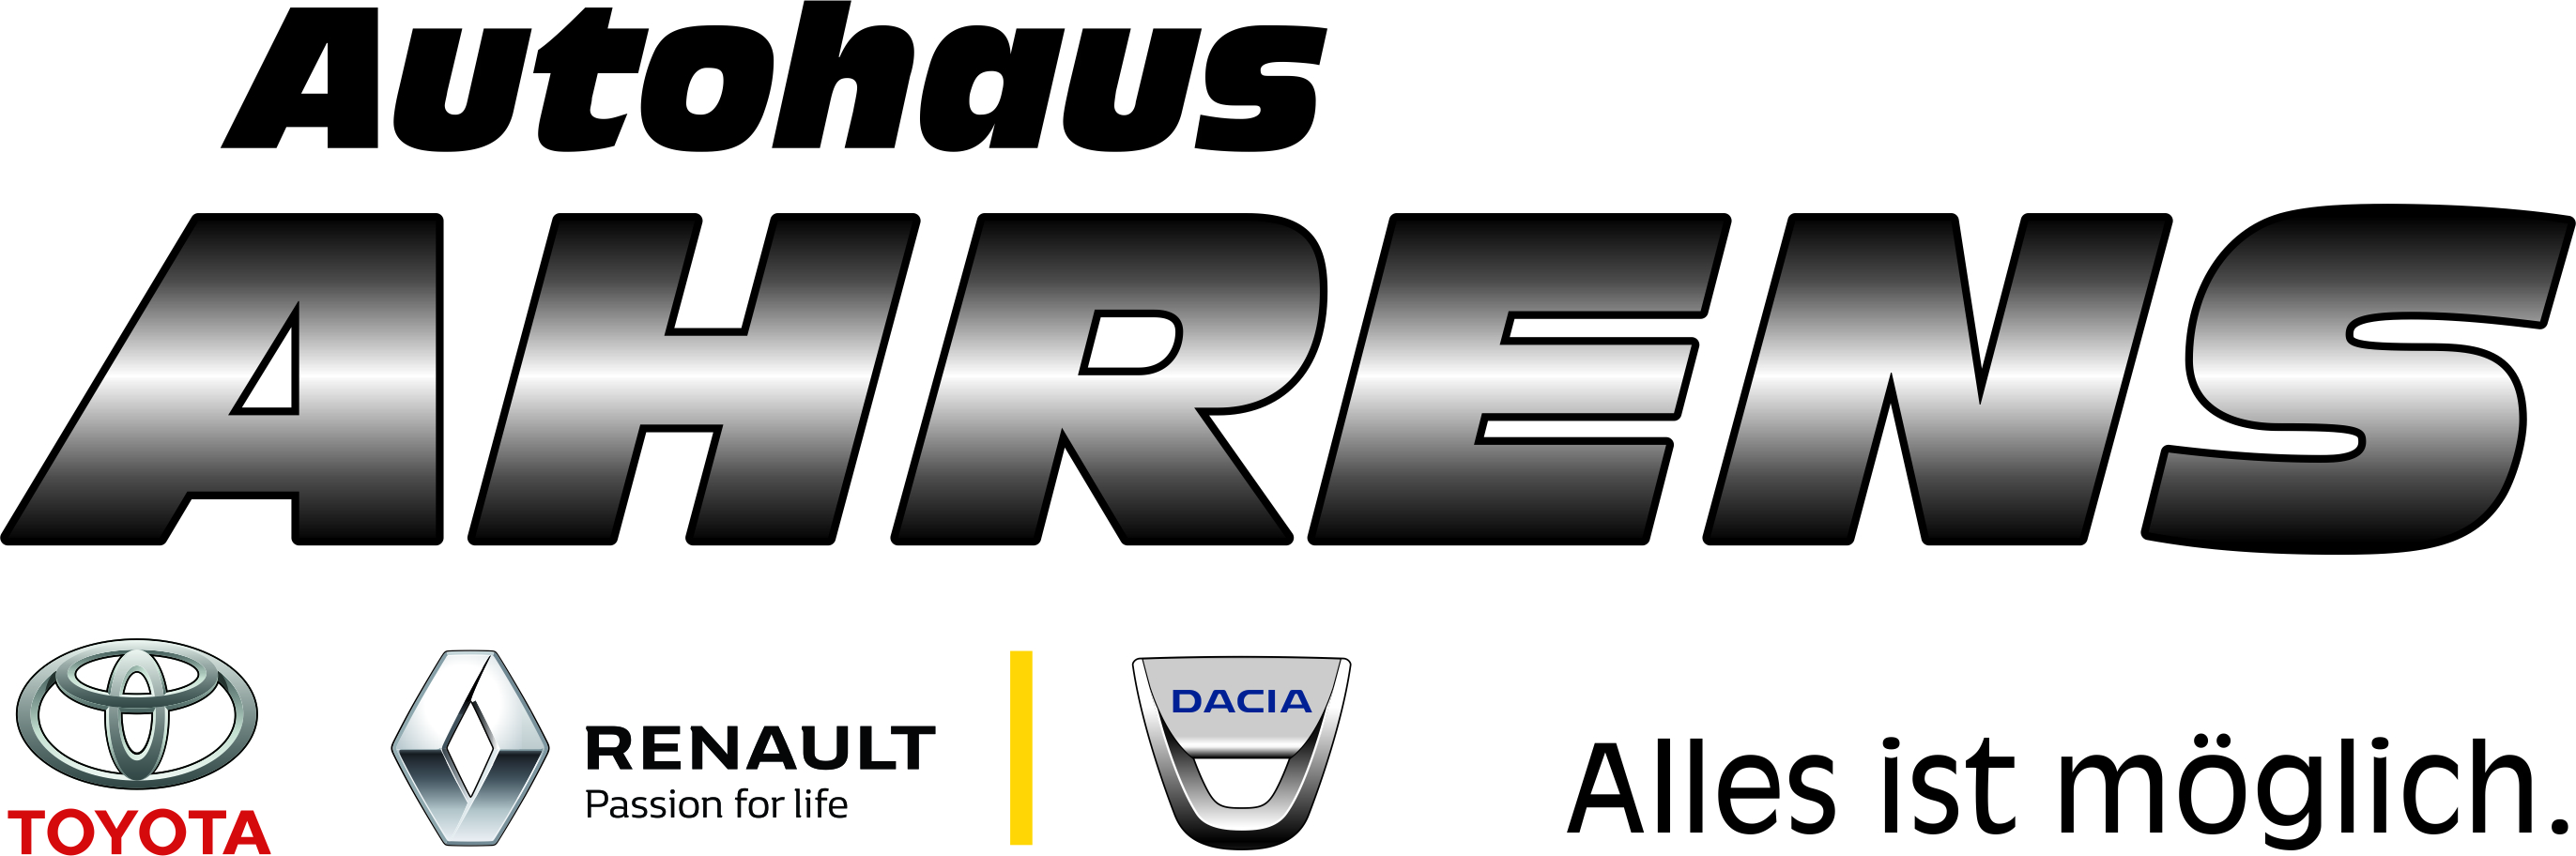 Renault-Ahrens GmbH